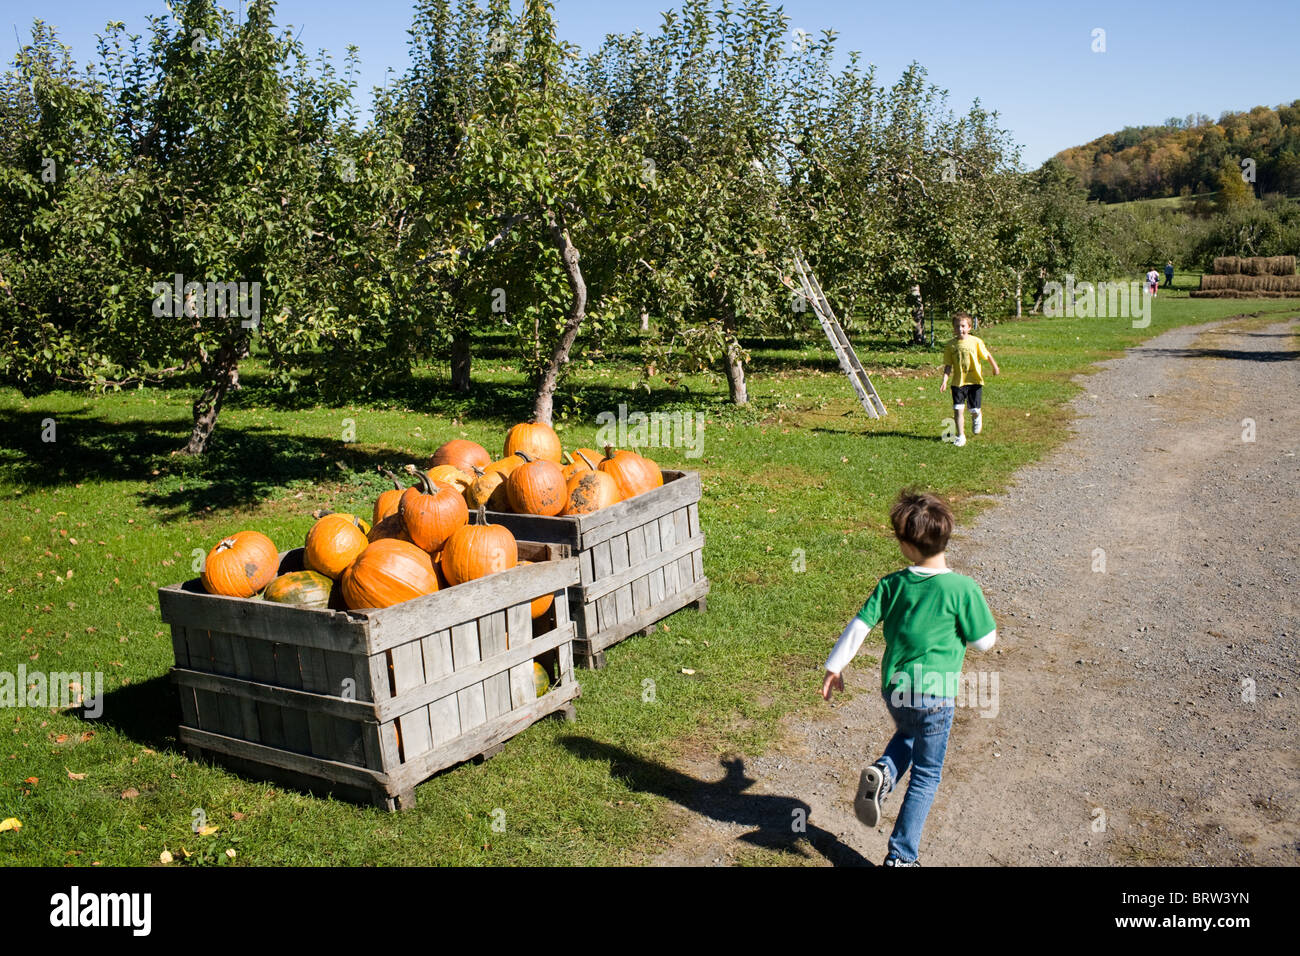 Boy runs by boxes of pumpkins for sale at an orchard in Adirondacks, New York State - Stock Image